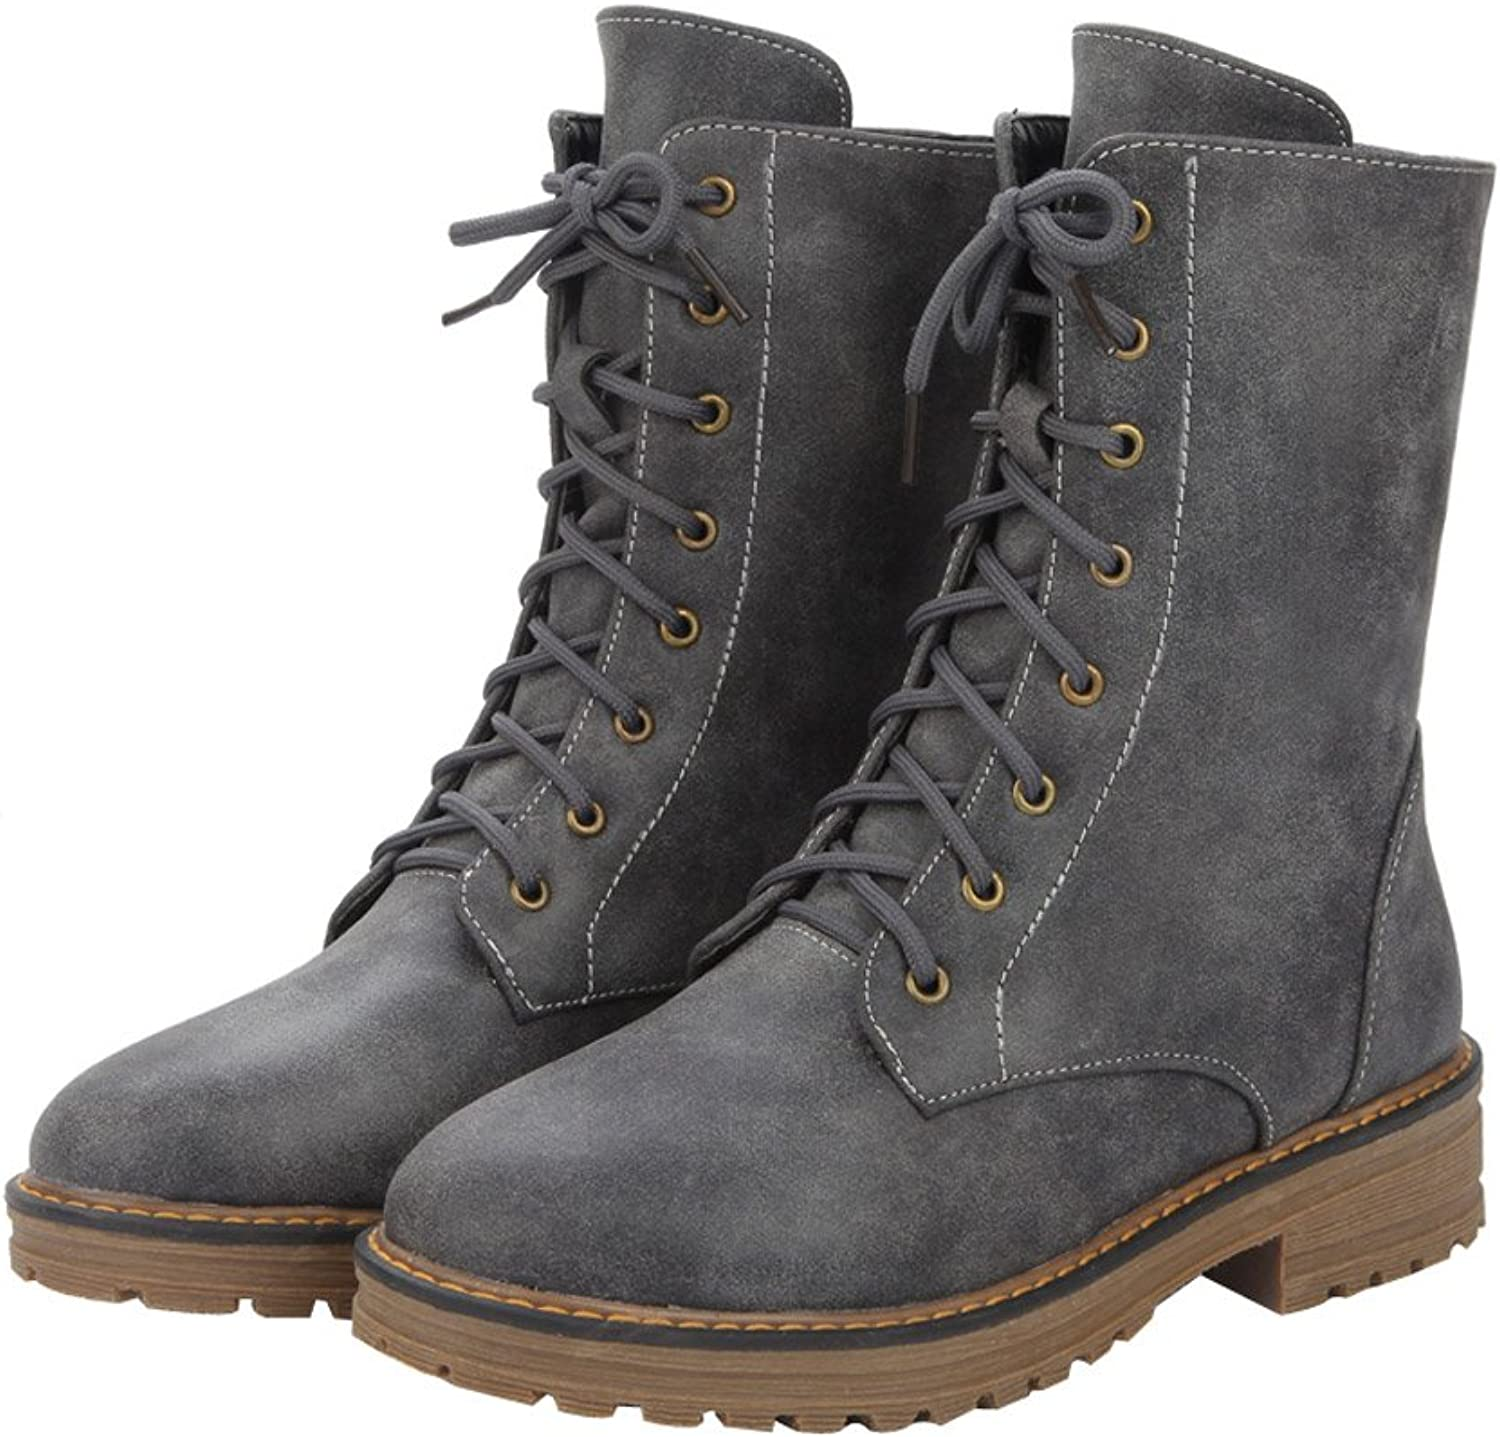 Eclimb Women's Military Combat Lace up Mid Calf High Riding Boots